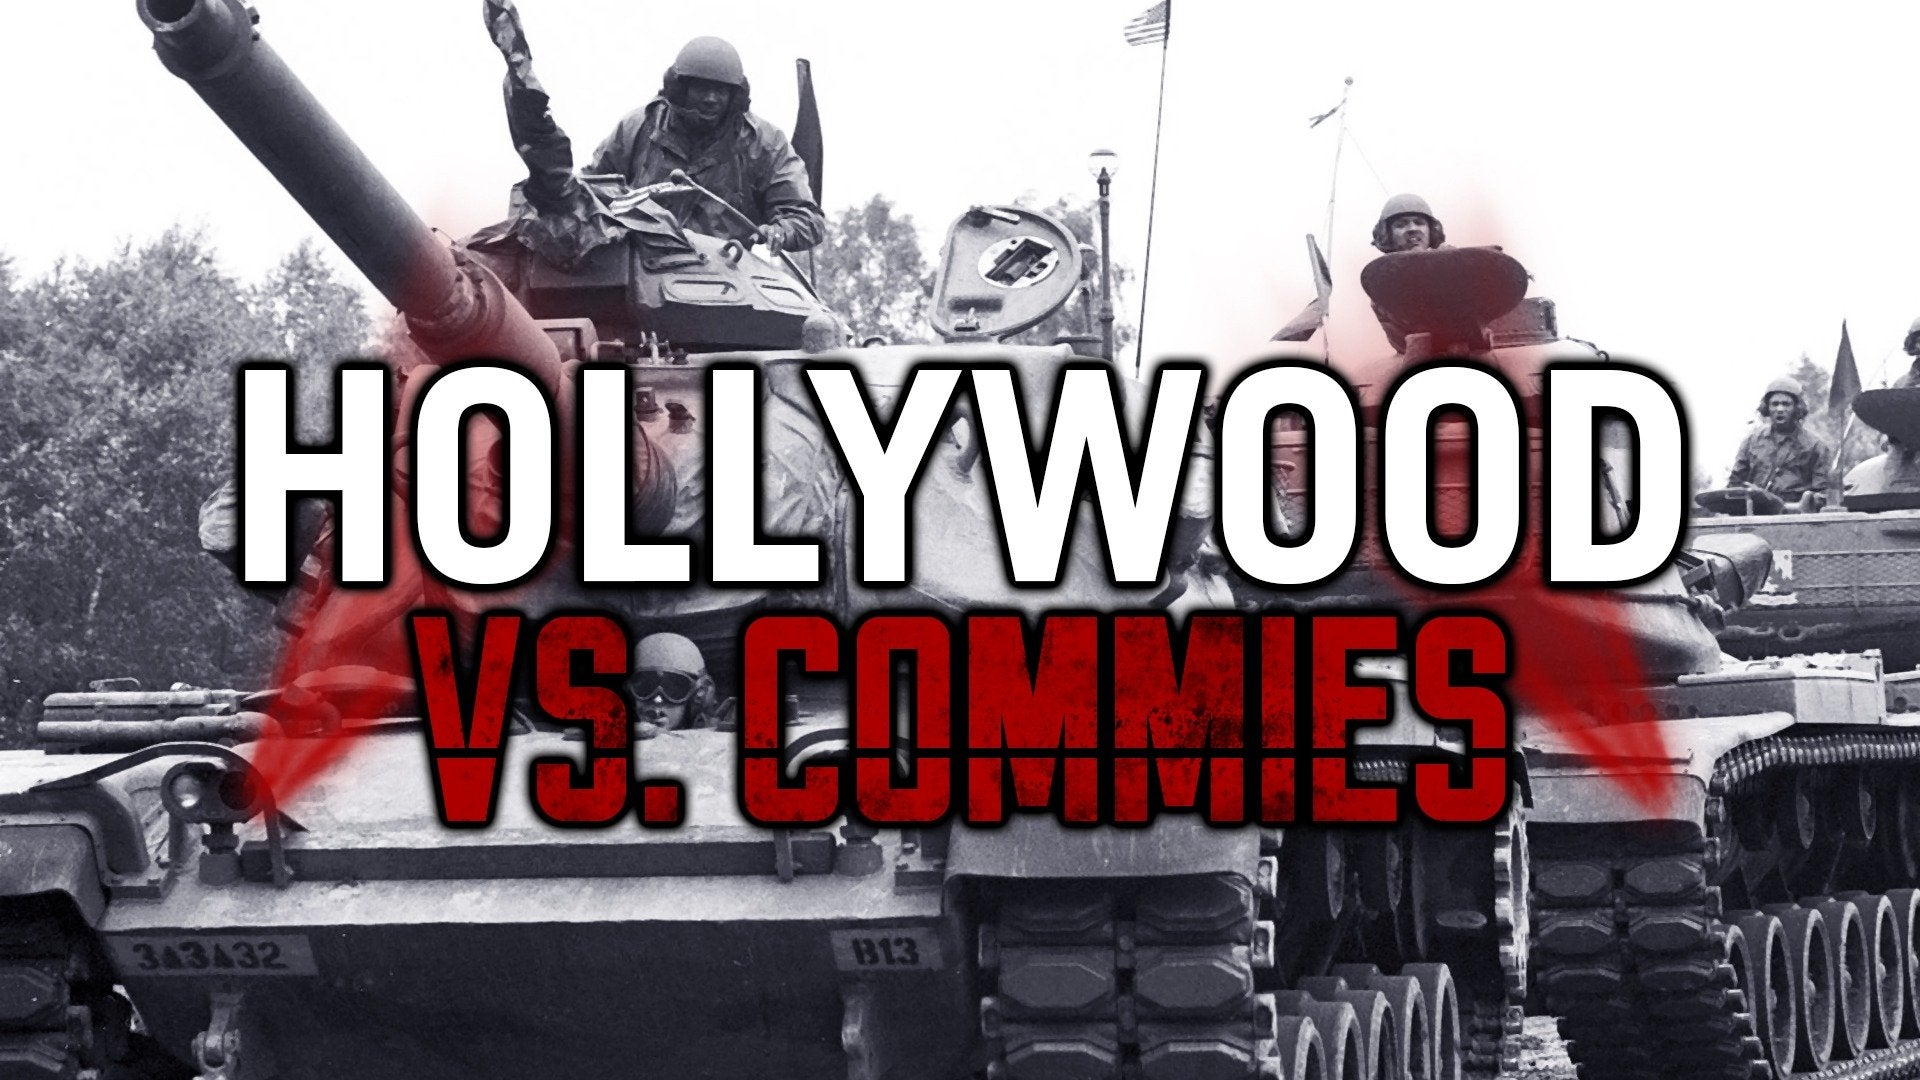 Hollywood vs. Commies